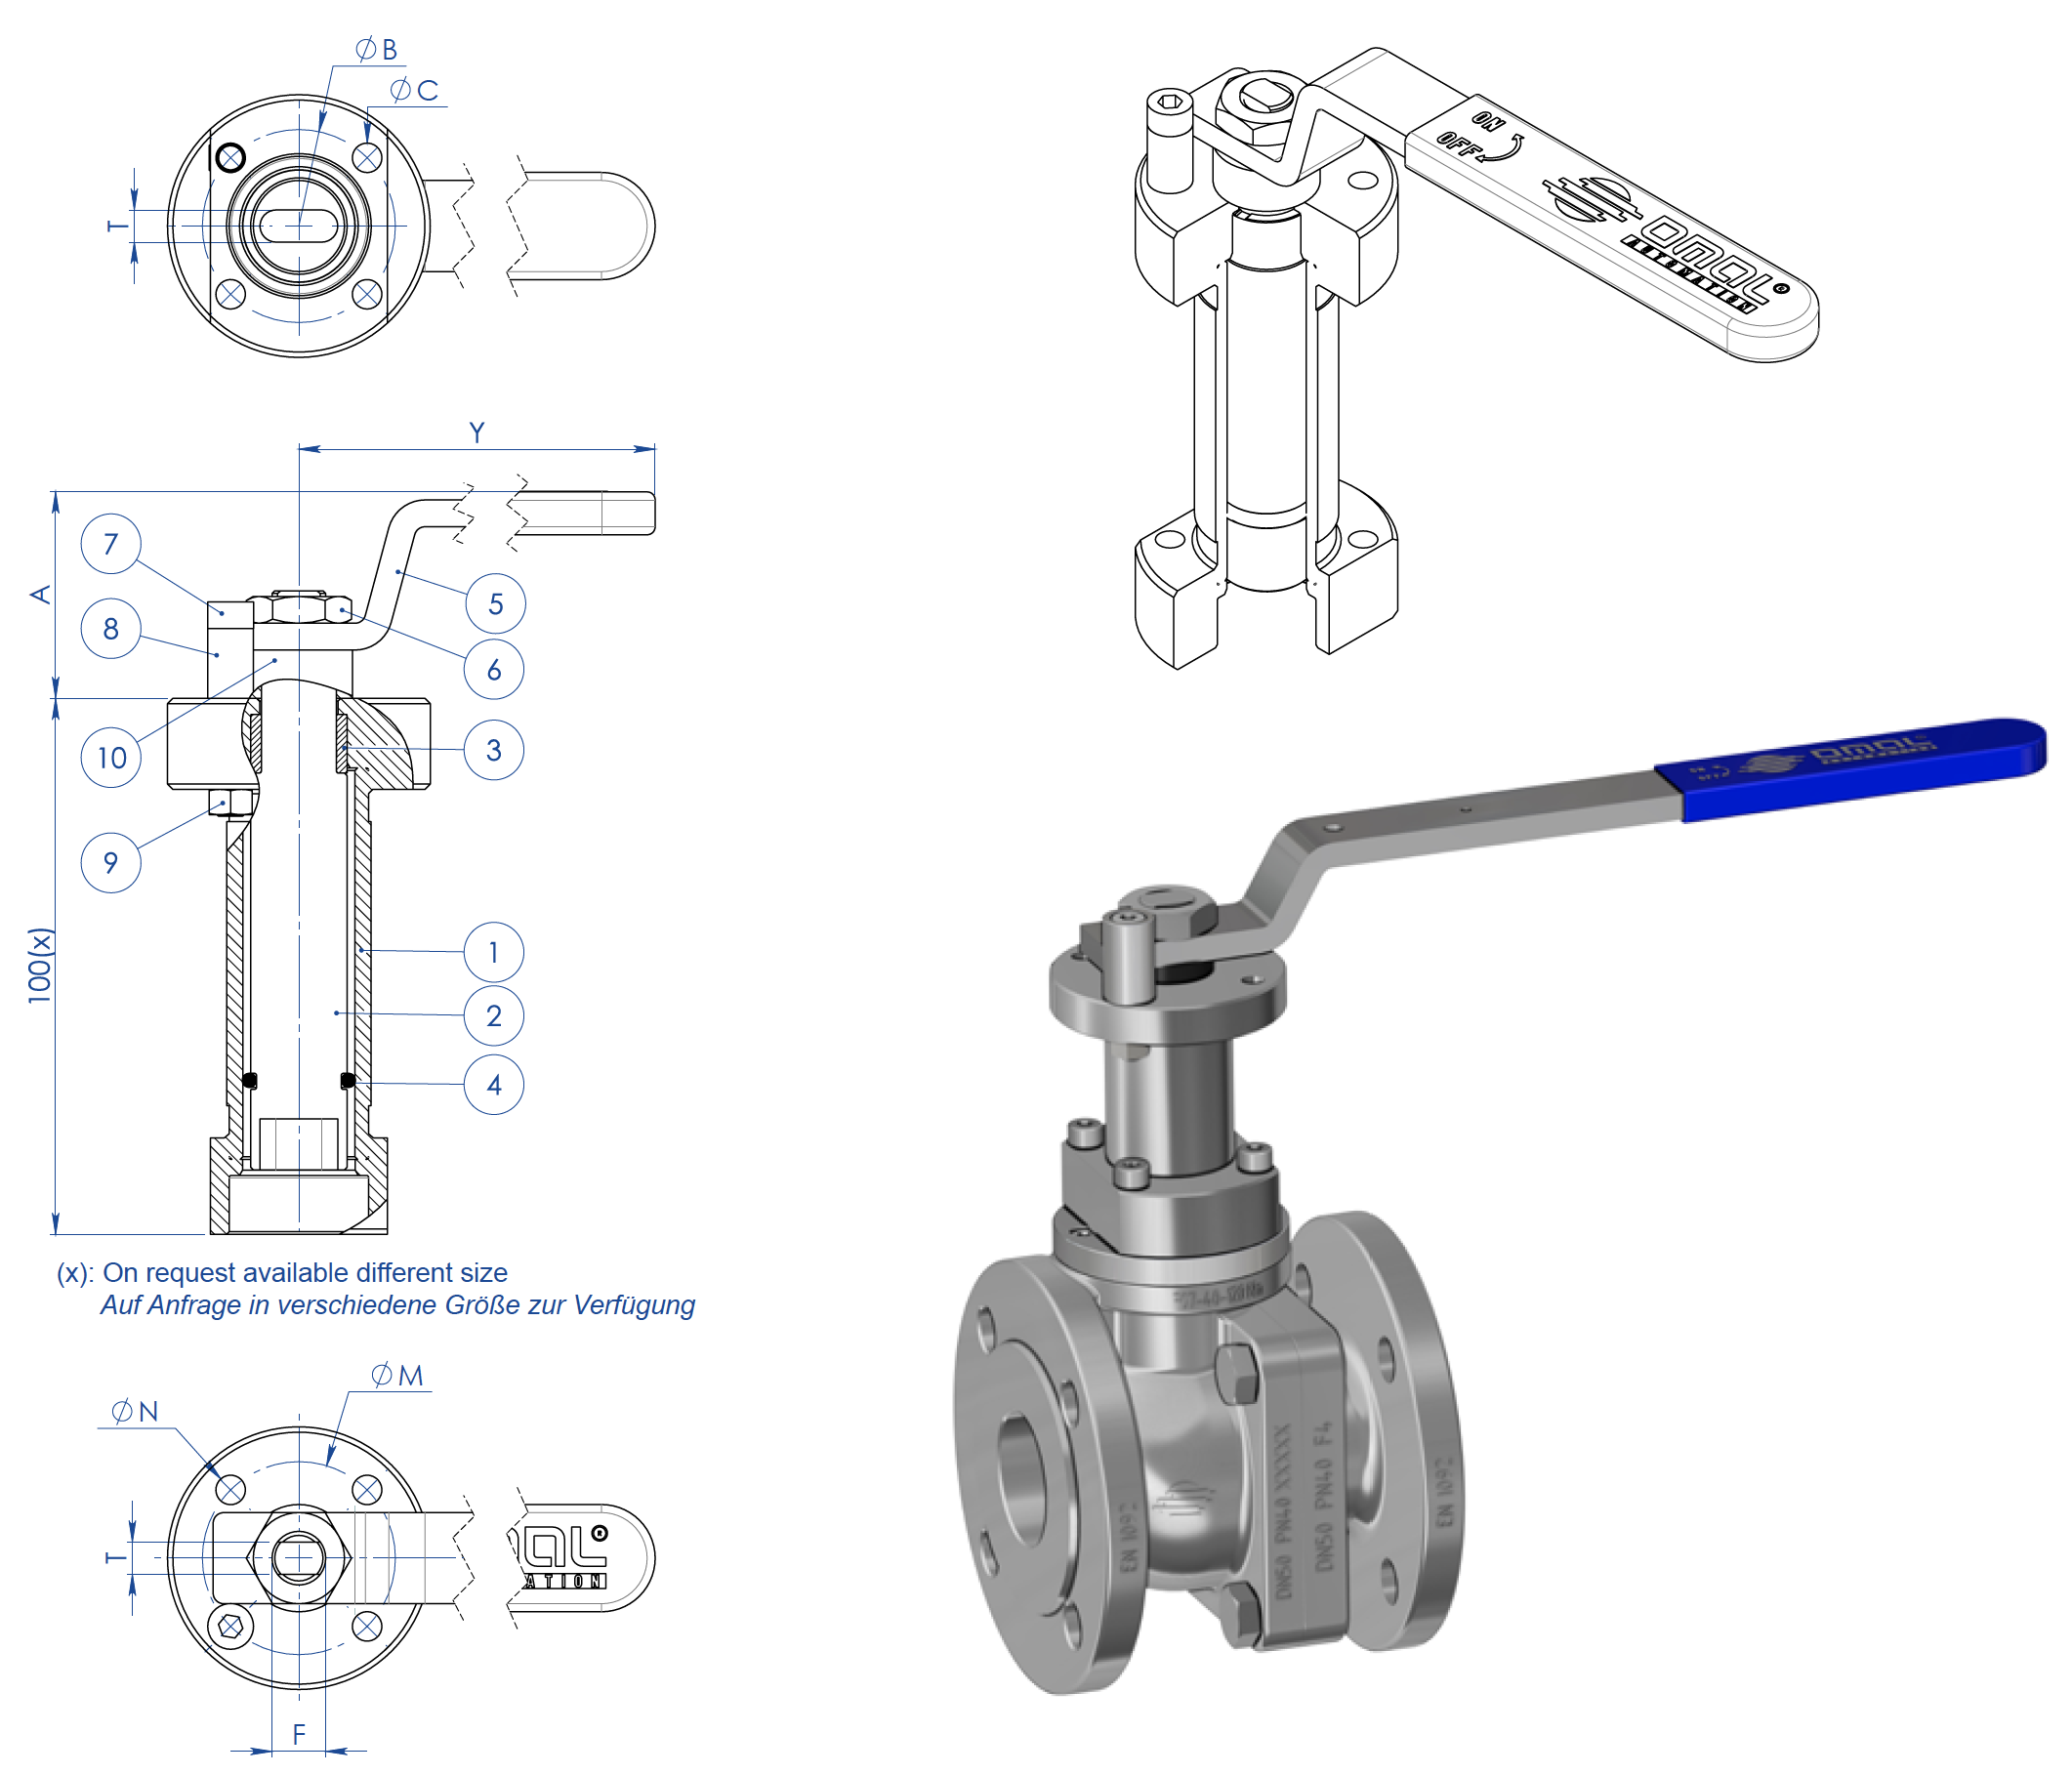 Prochemie 60 Split Body PN 16-40 stainless steel ball valve - accessories - Welded stem extension with lever